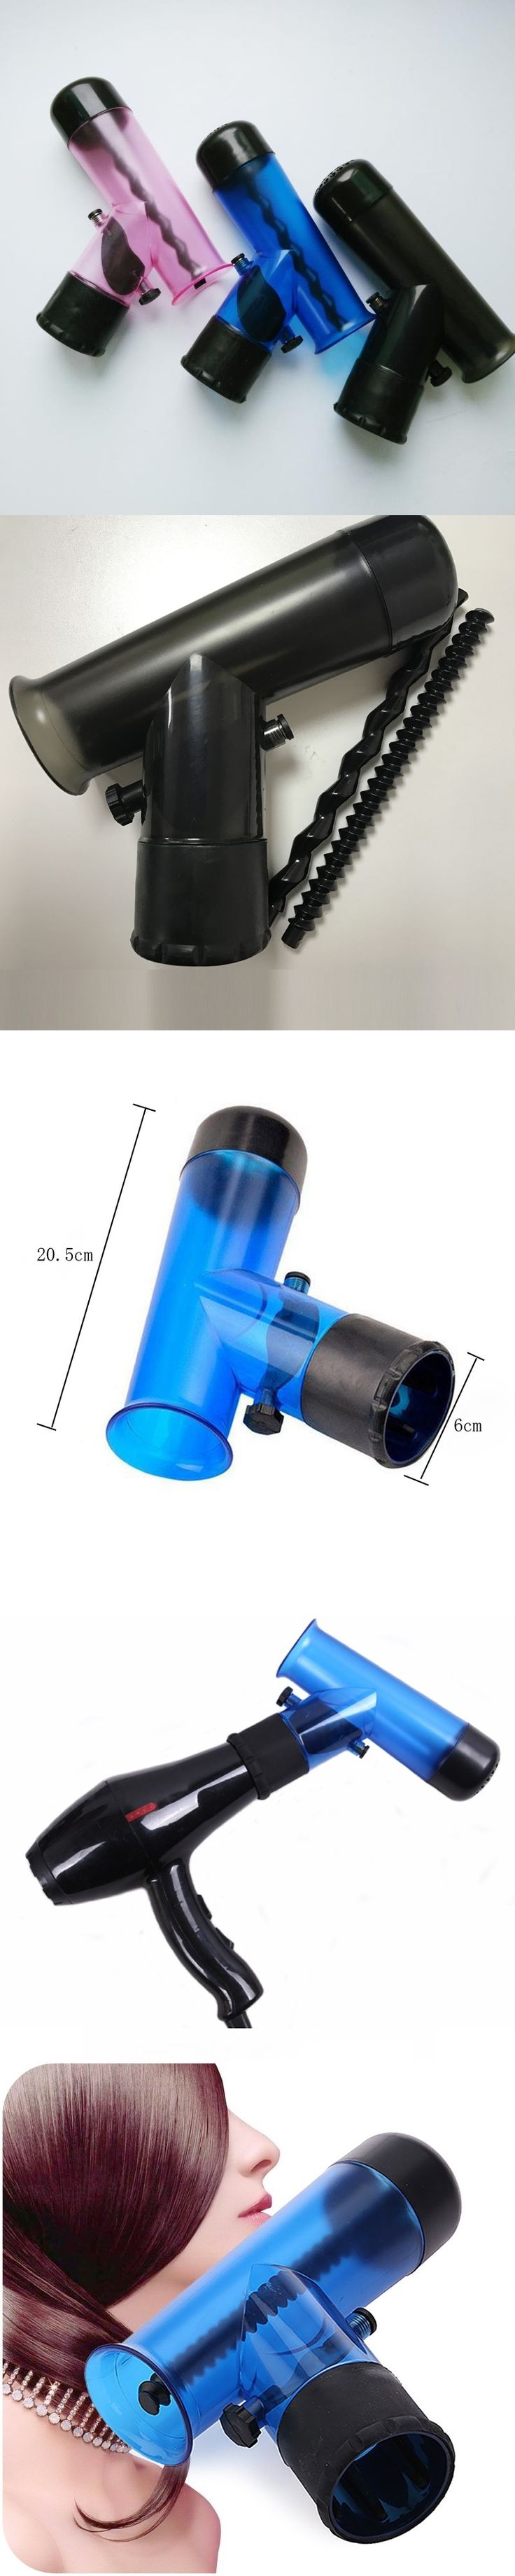 Professional Hair Dryer Diffuser Magic Wind Spin Curl Hair Roller Curler Hair Salon Styling Tools Make Hair Curly Without Damage